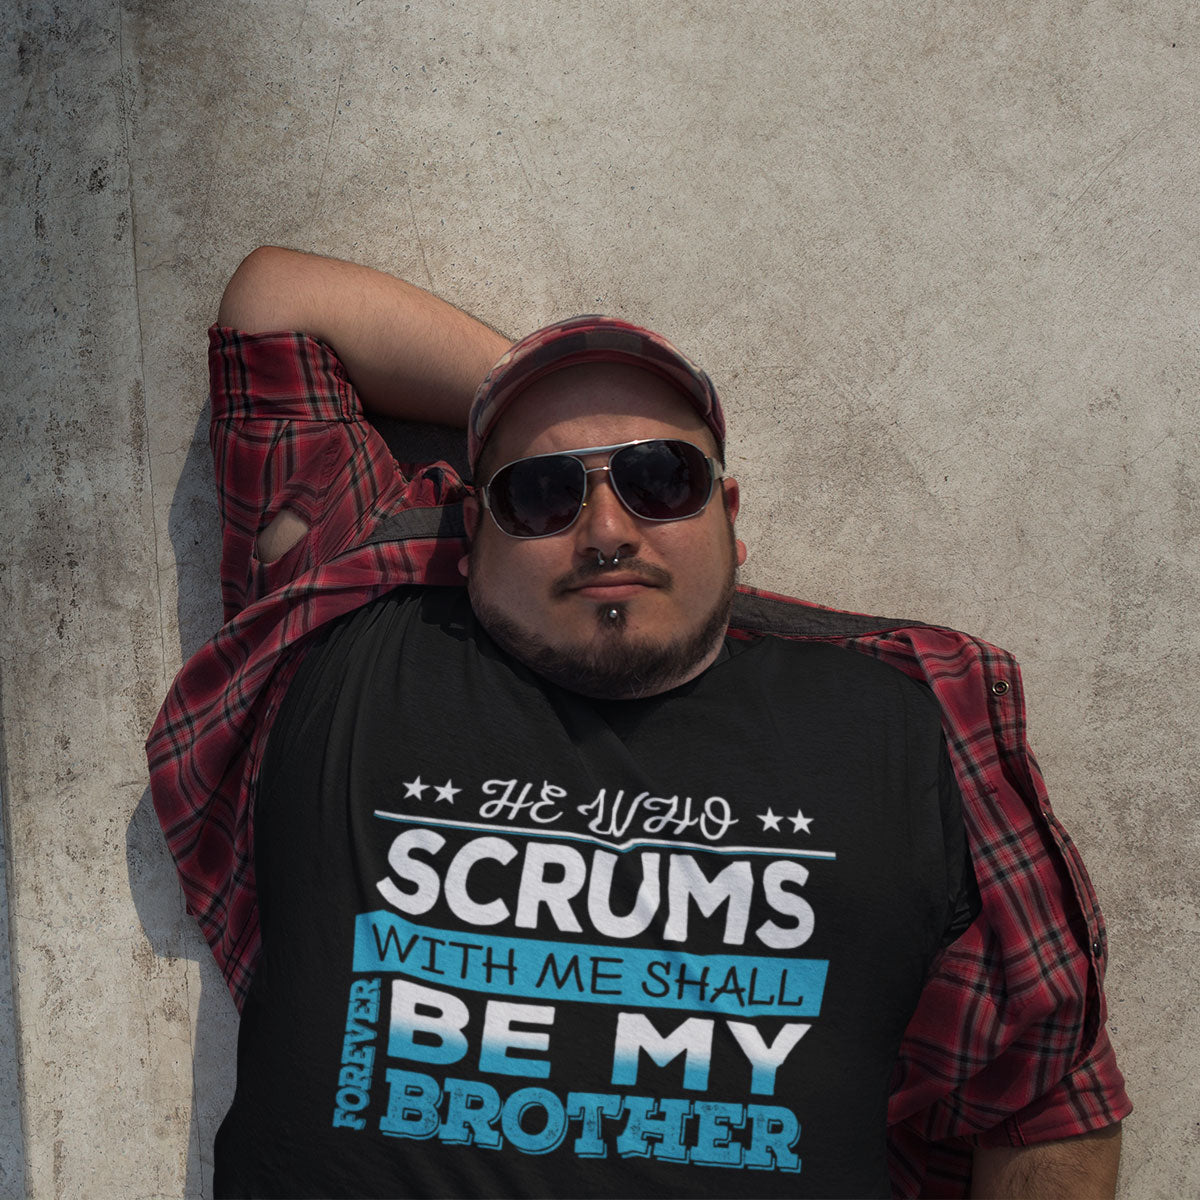 He Who Scrums With Me Shall Forever Be My Brother Rugby Tee - First XV rugbystuff.com